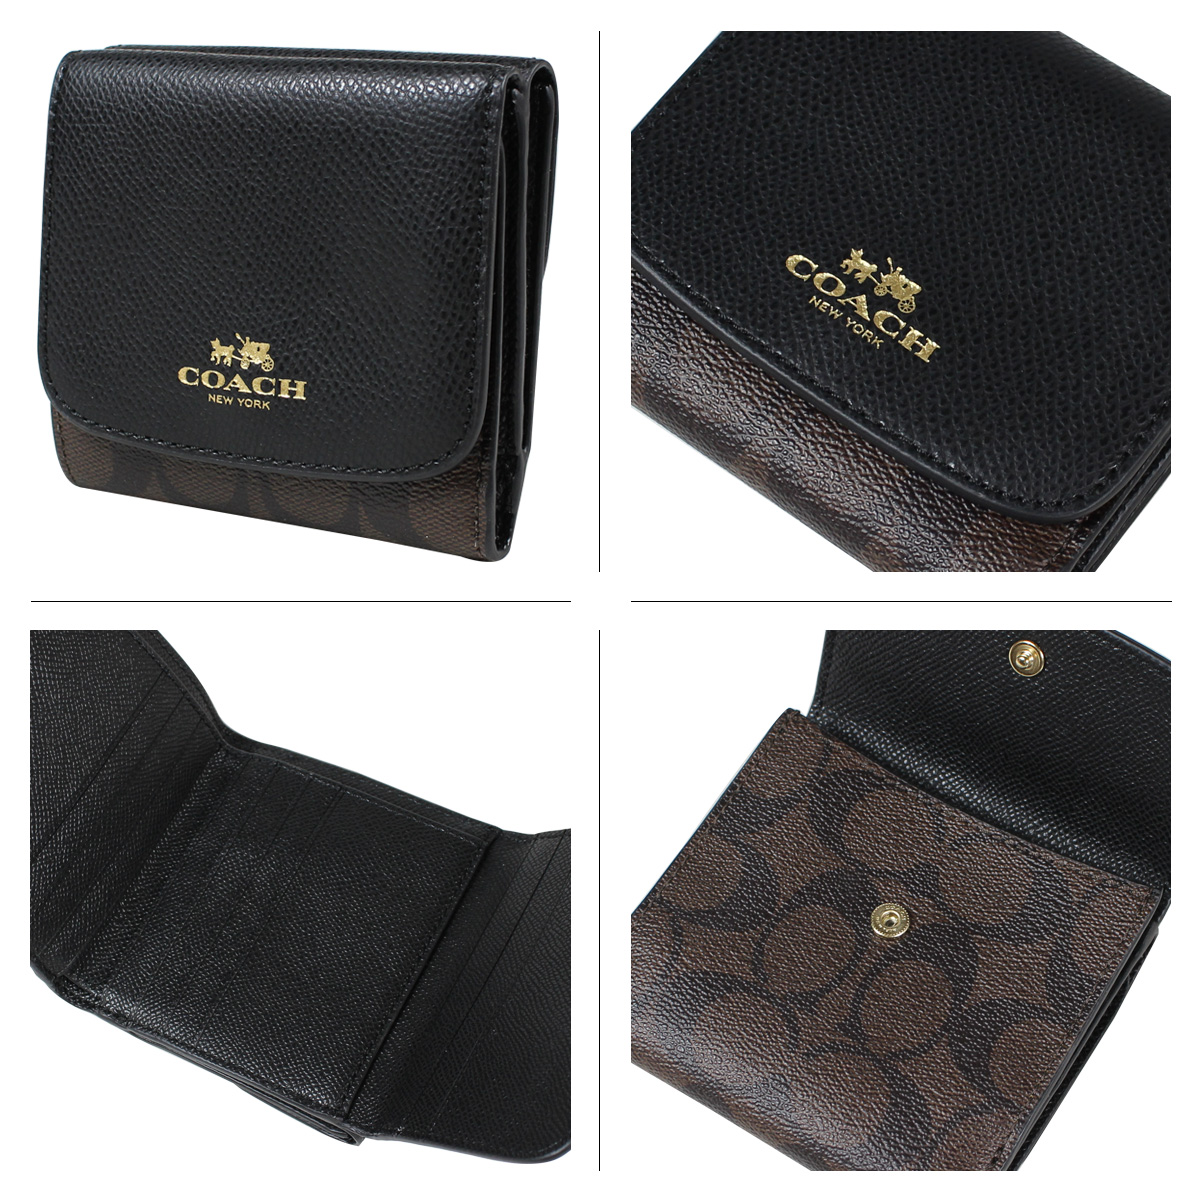 cheaper 8a114 e26c7 norway brown and black coach wallet 5cce1 8b1e1